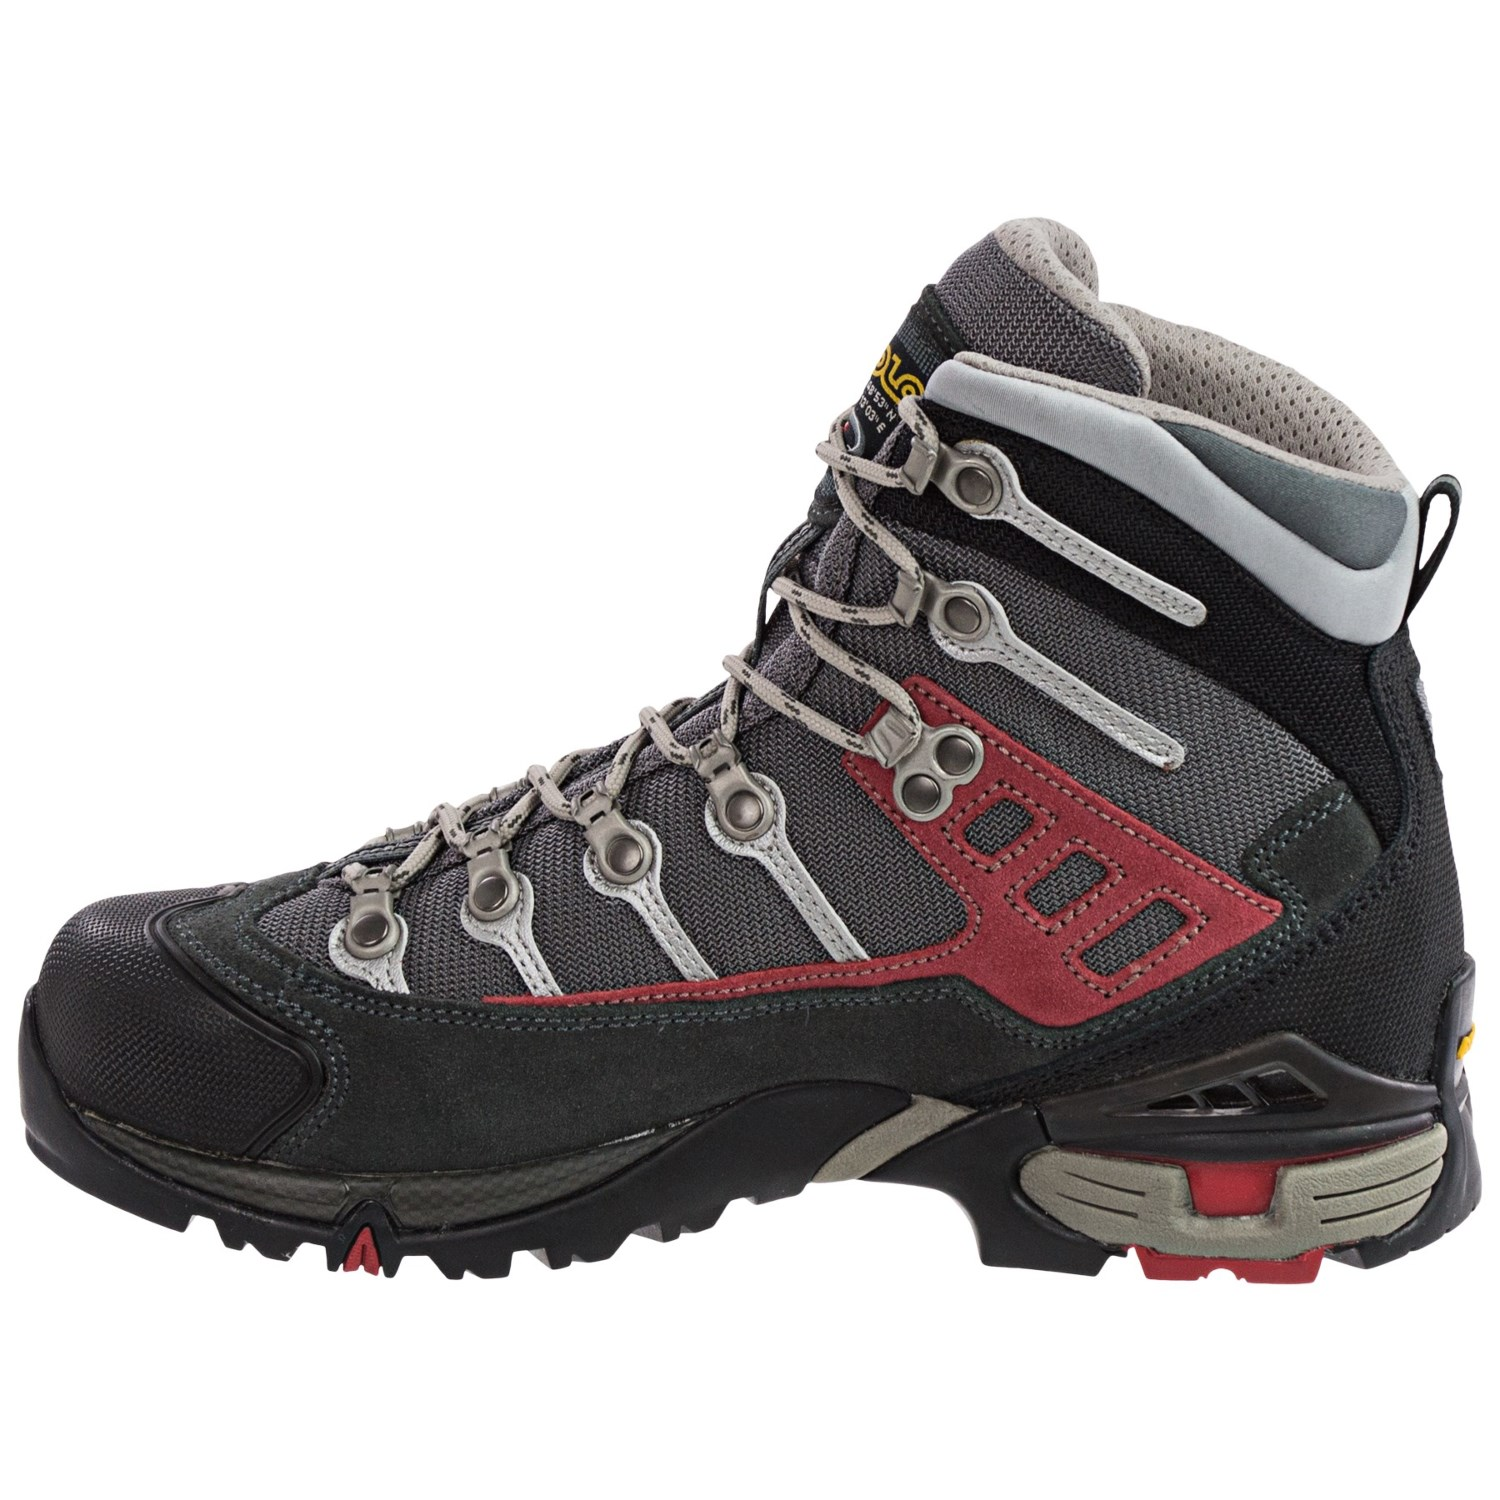 48ecceb0cc7 Asolo Atlantis Gore-Tex® Hiking Boots - Waterproof (For Women)